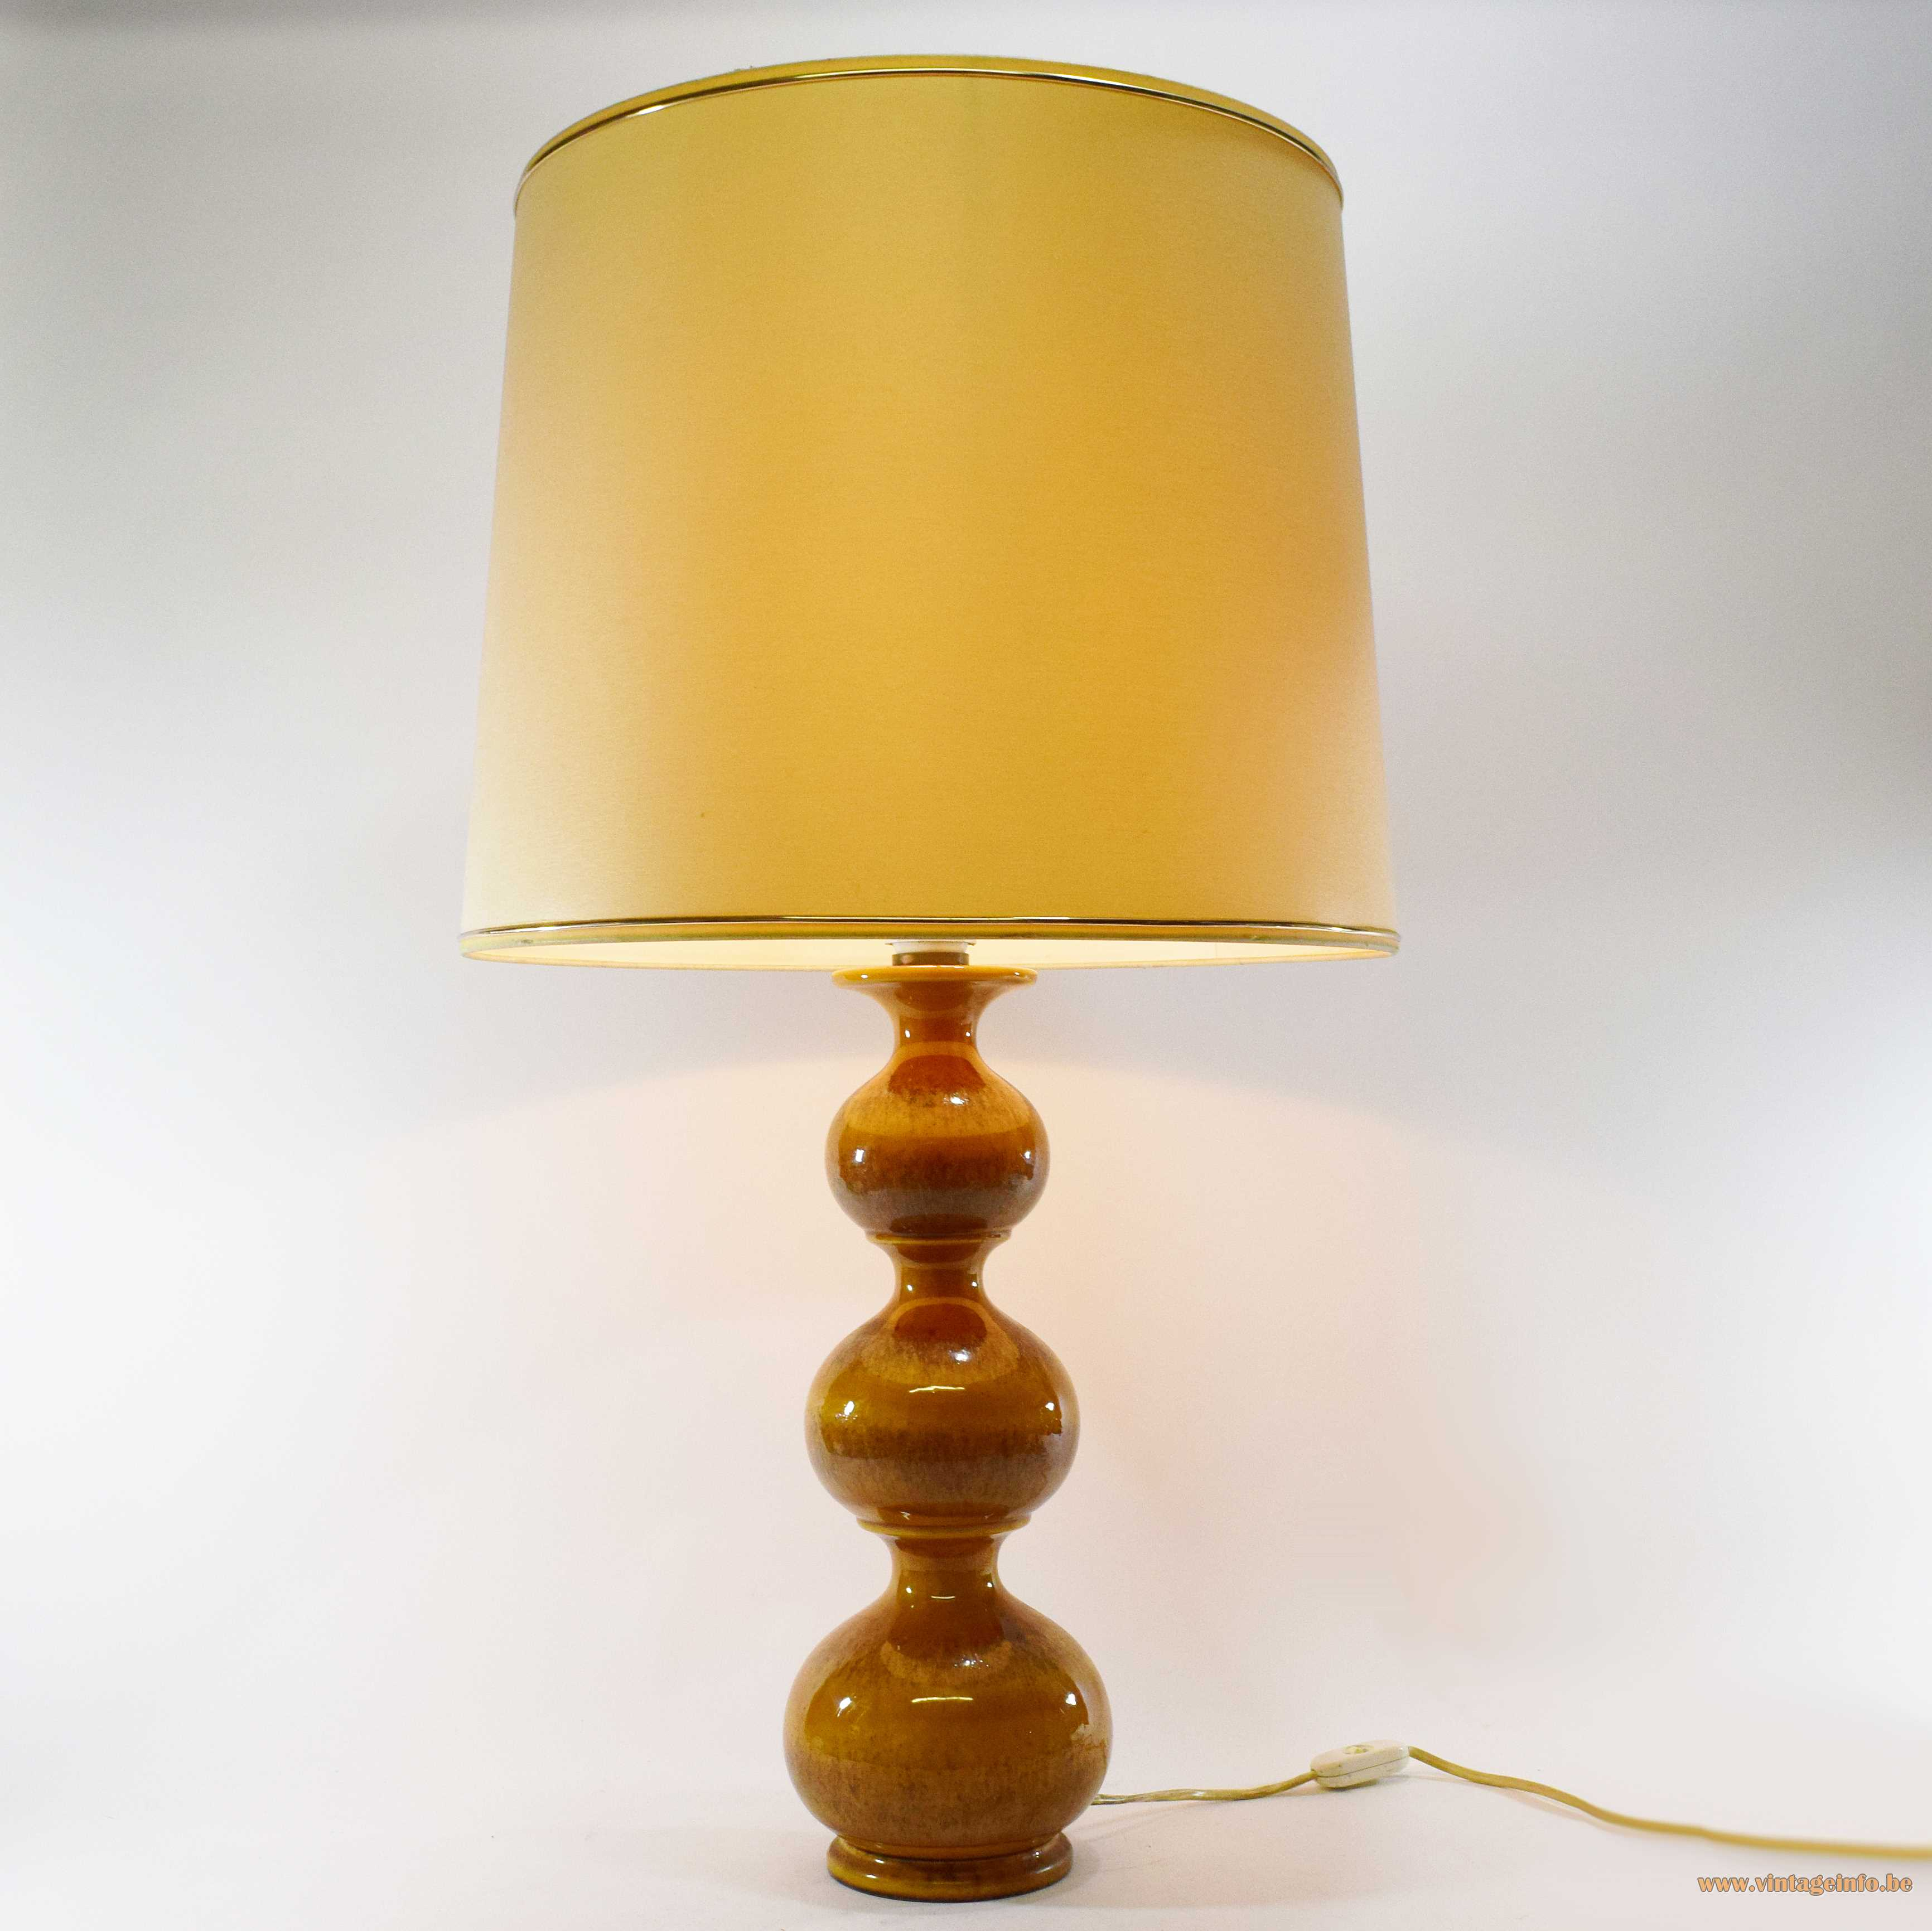 Kaiser Leuchten ceramic table lamp 3 ochre glazed globes conical fabric lampshade 1960s 1970s Germany